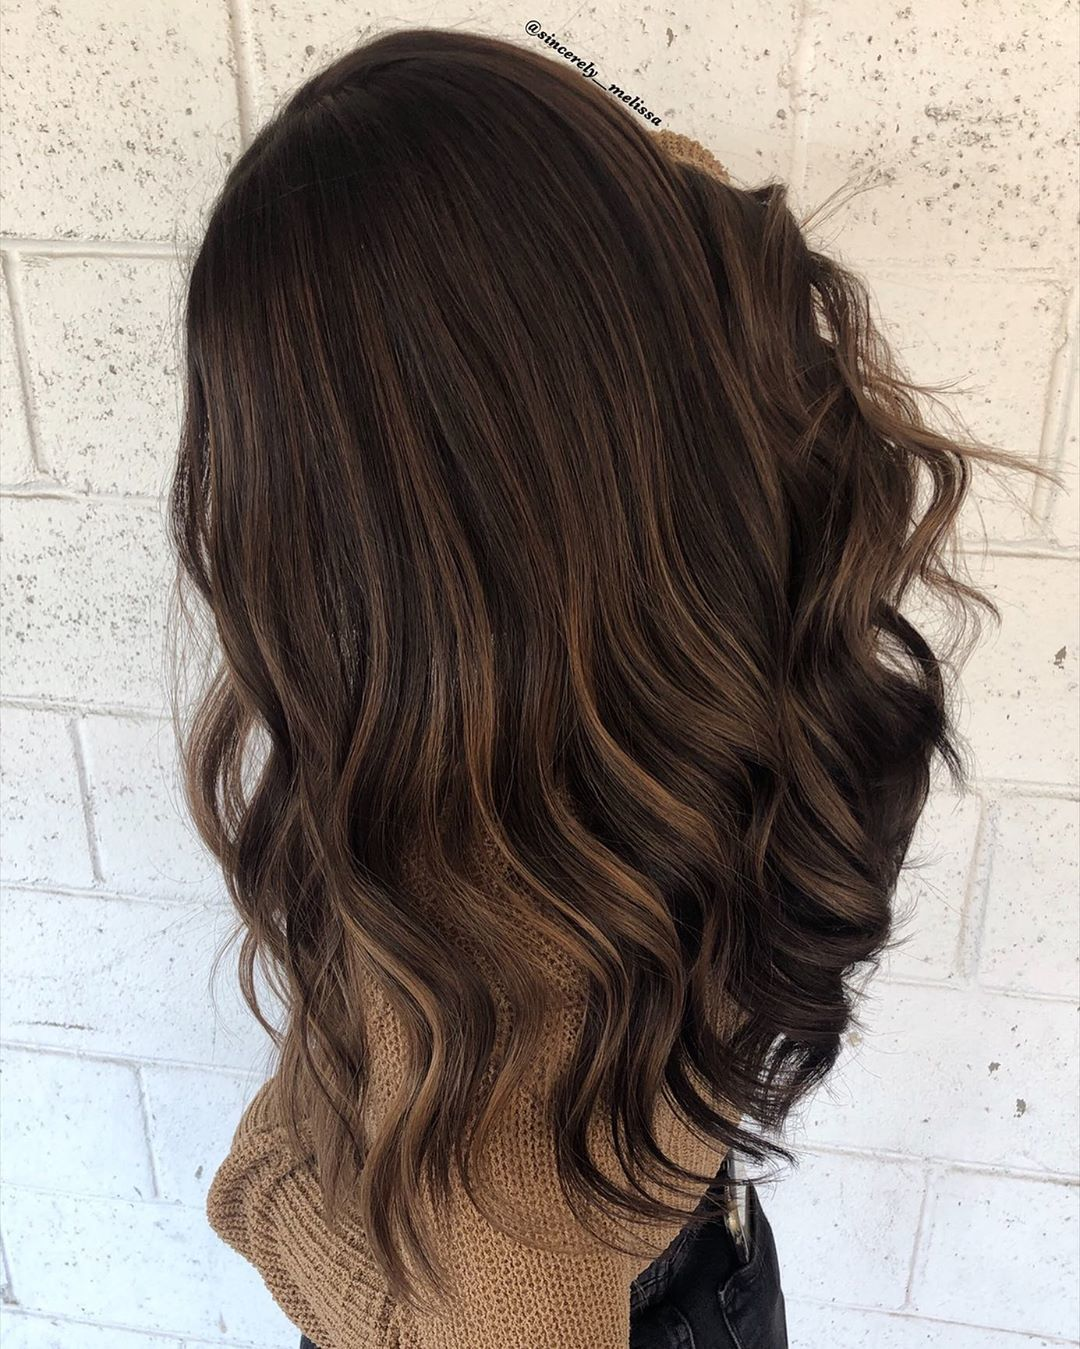 Woman with dark long hair with cocoa brown subtle highlights in her hair